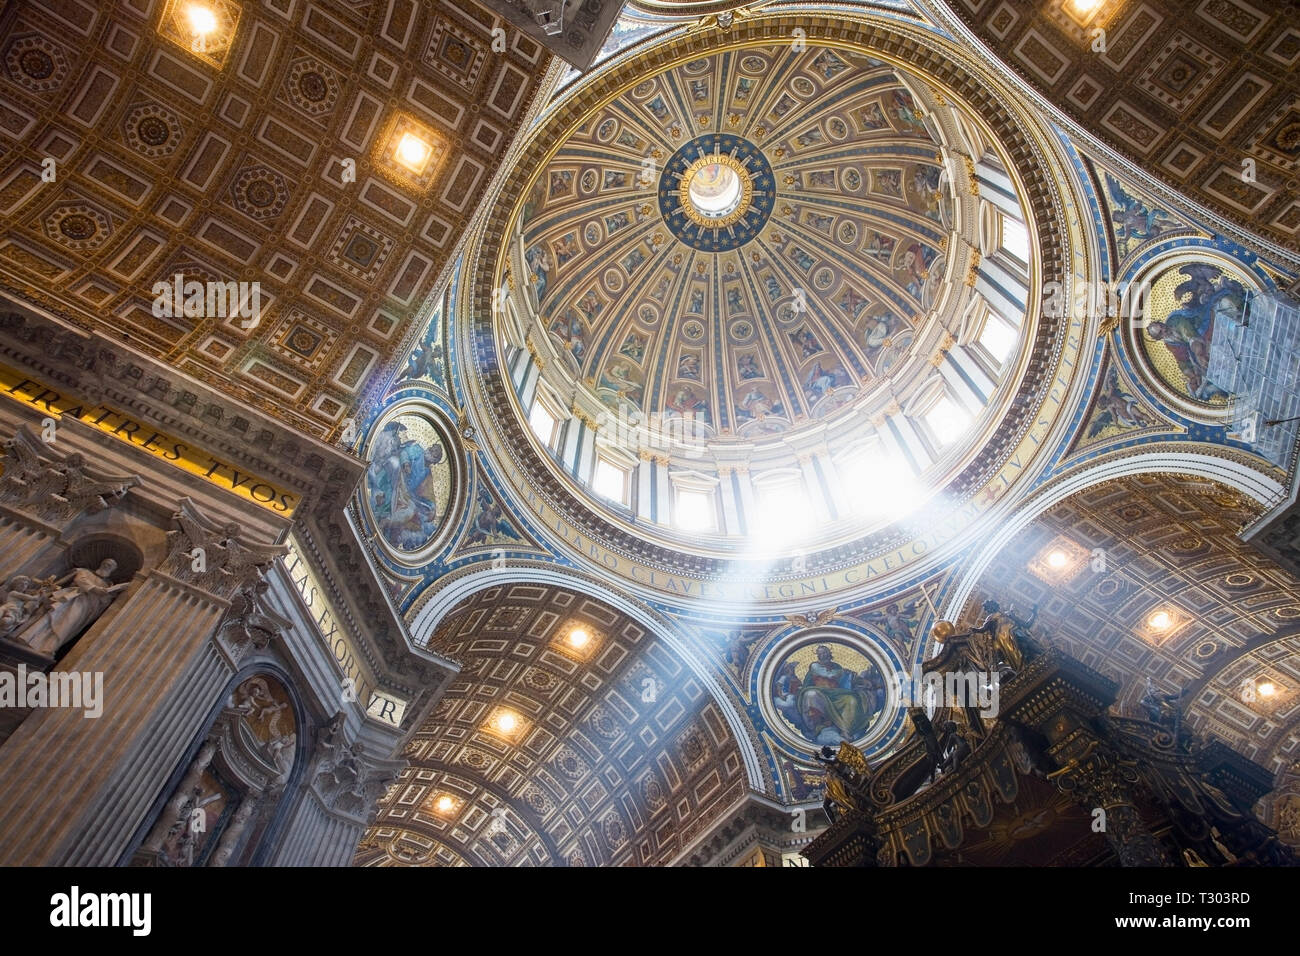 Interior of the dome of St Peters Basilica. The Vatican, Rome, Italy. - Stock Image